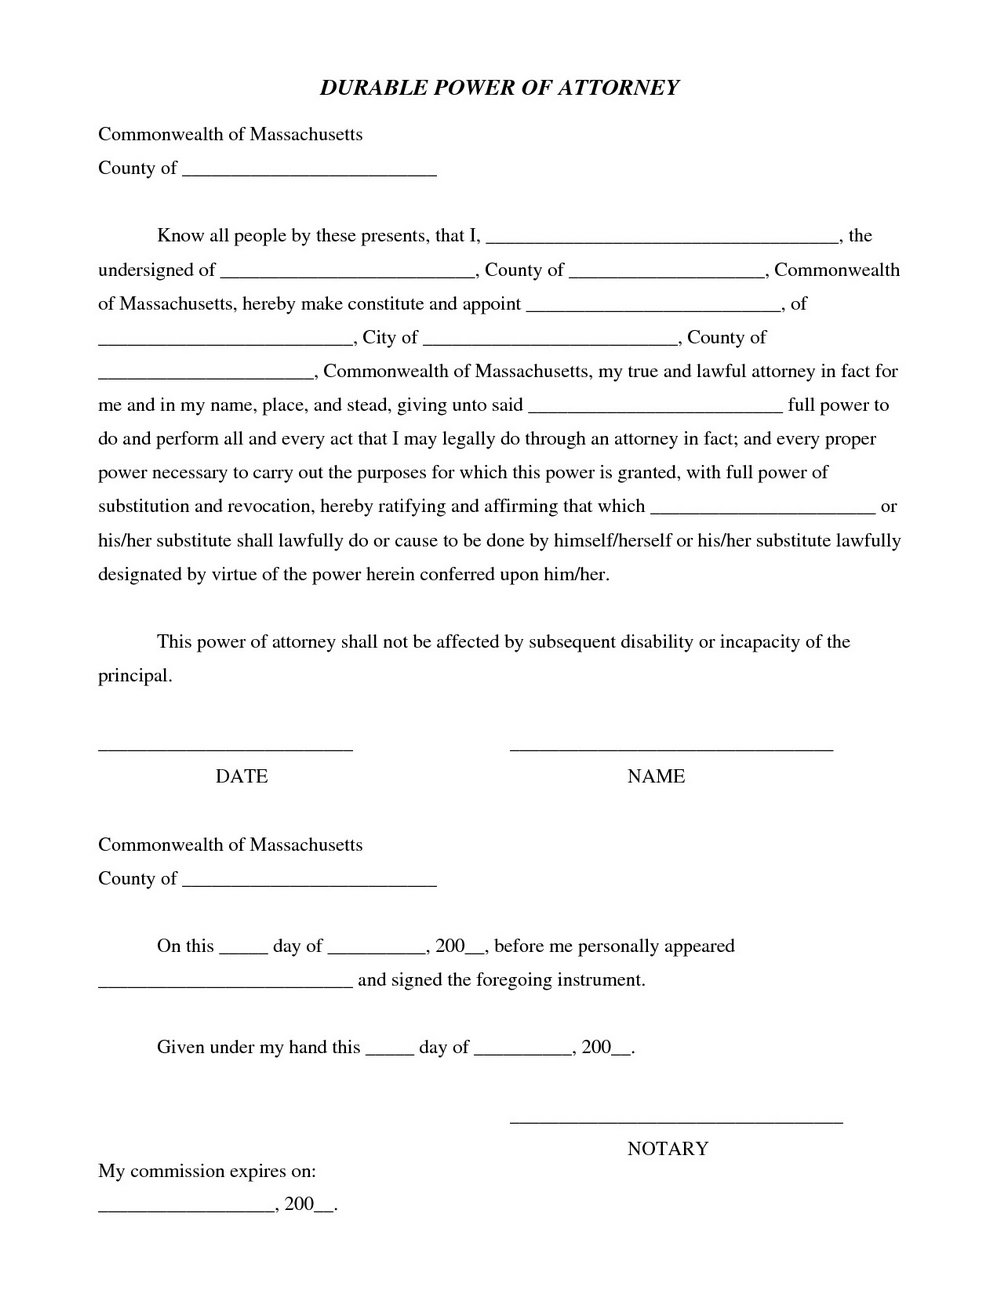 Free Durable Power Of Attorney Form California